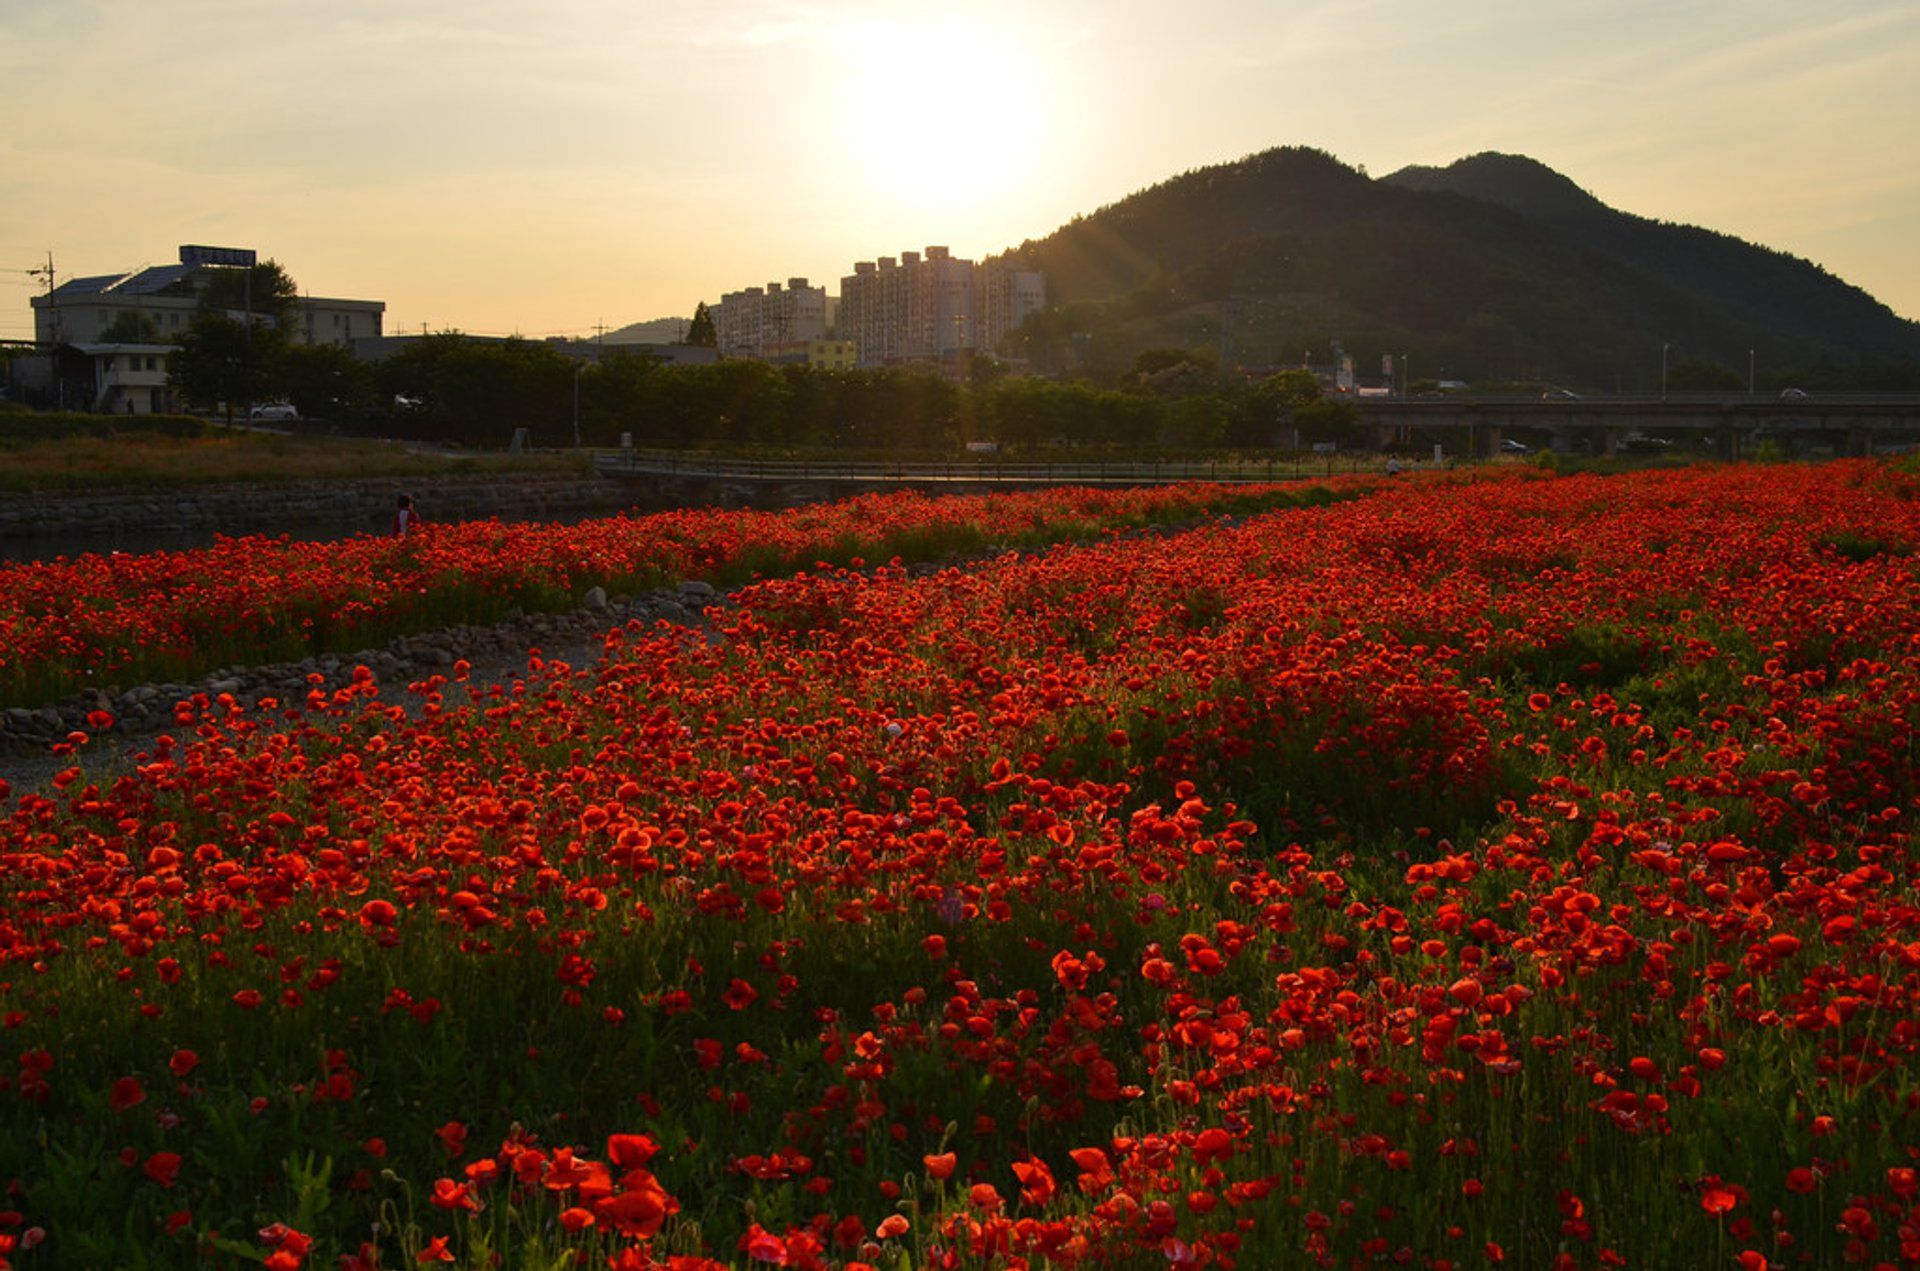 Poppy field sunset, Gwangyang-eup, Jeollanamdo, South Korea 2020